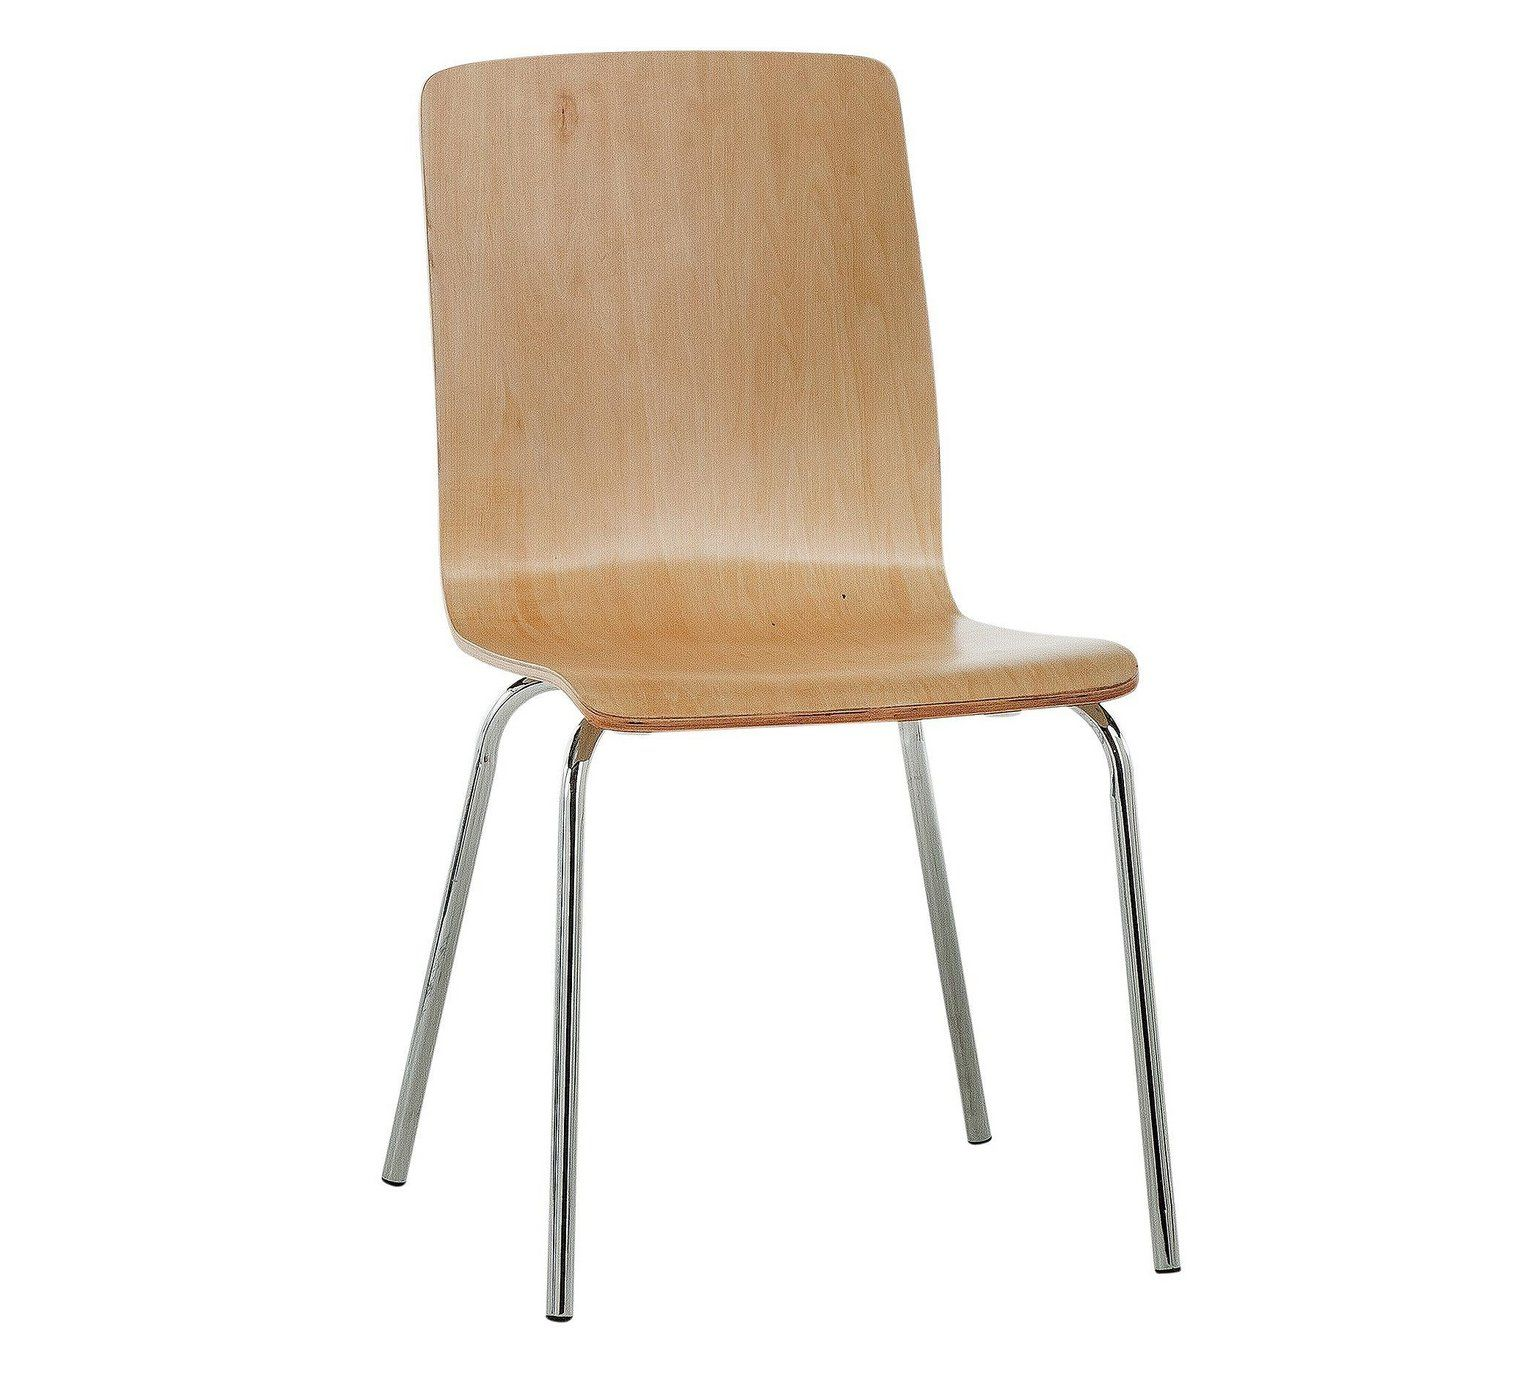 Buy Simple Value Bentwood Dining Chair Natural at Argos